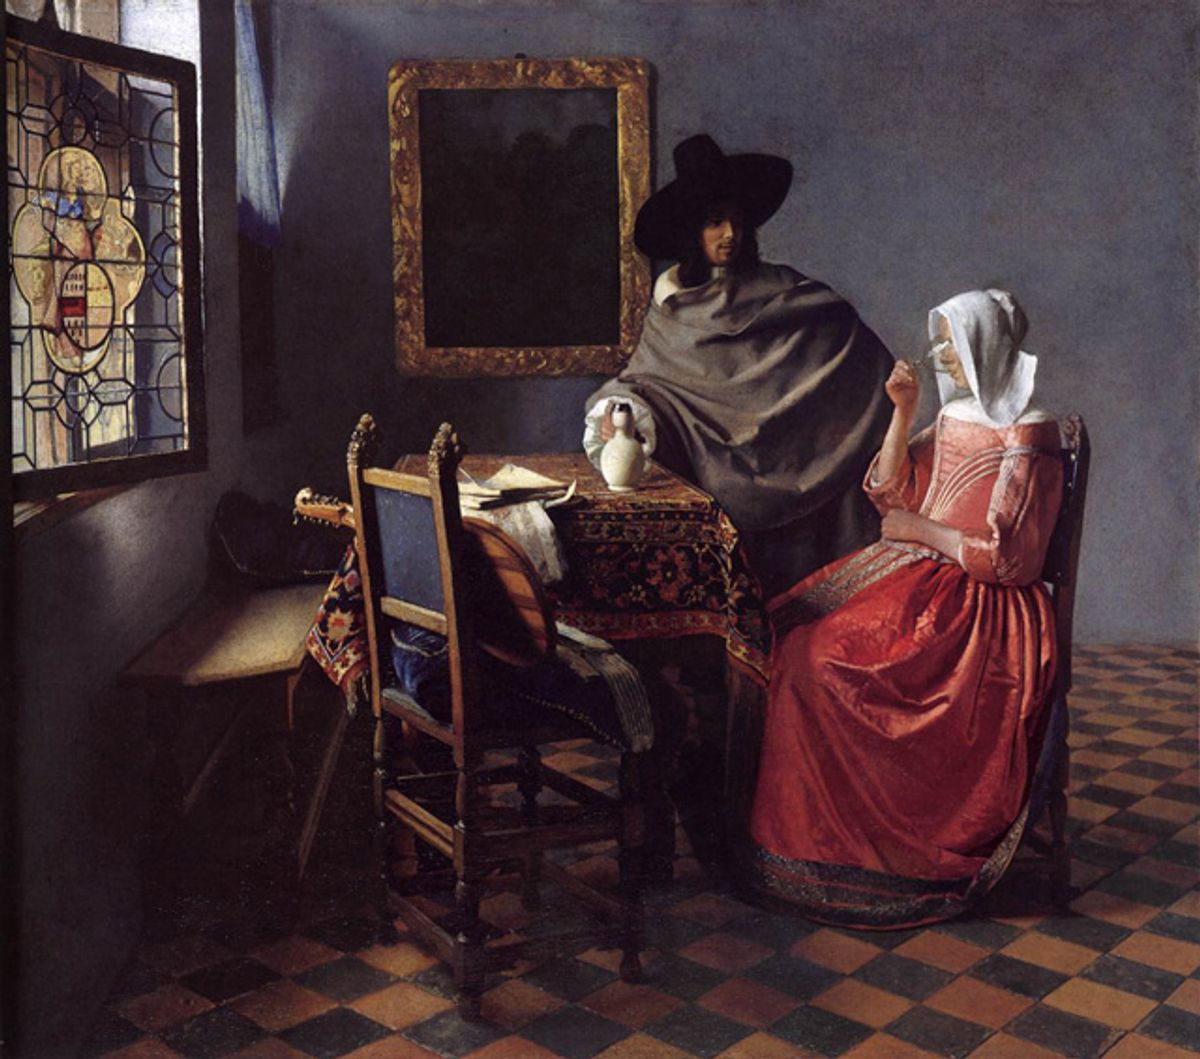 """Johannes Vermeer, """"A Lady Drinking and a Gentleman"""" (c. 1658), oil on canvas, 66.3 x 76.5 cm, Staatliche Museen, Berlin   (via Web Gallery of Art)"""